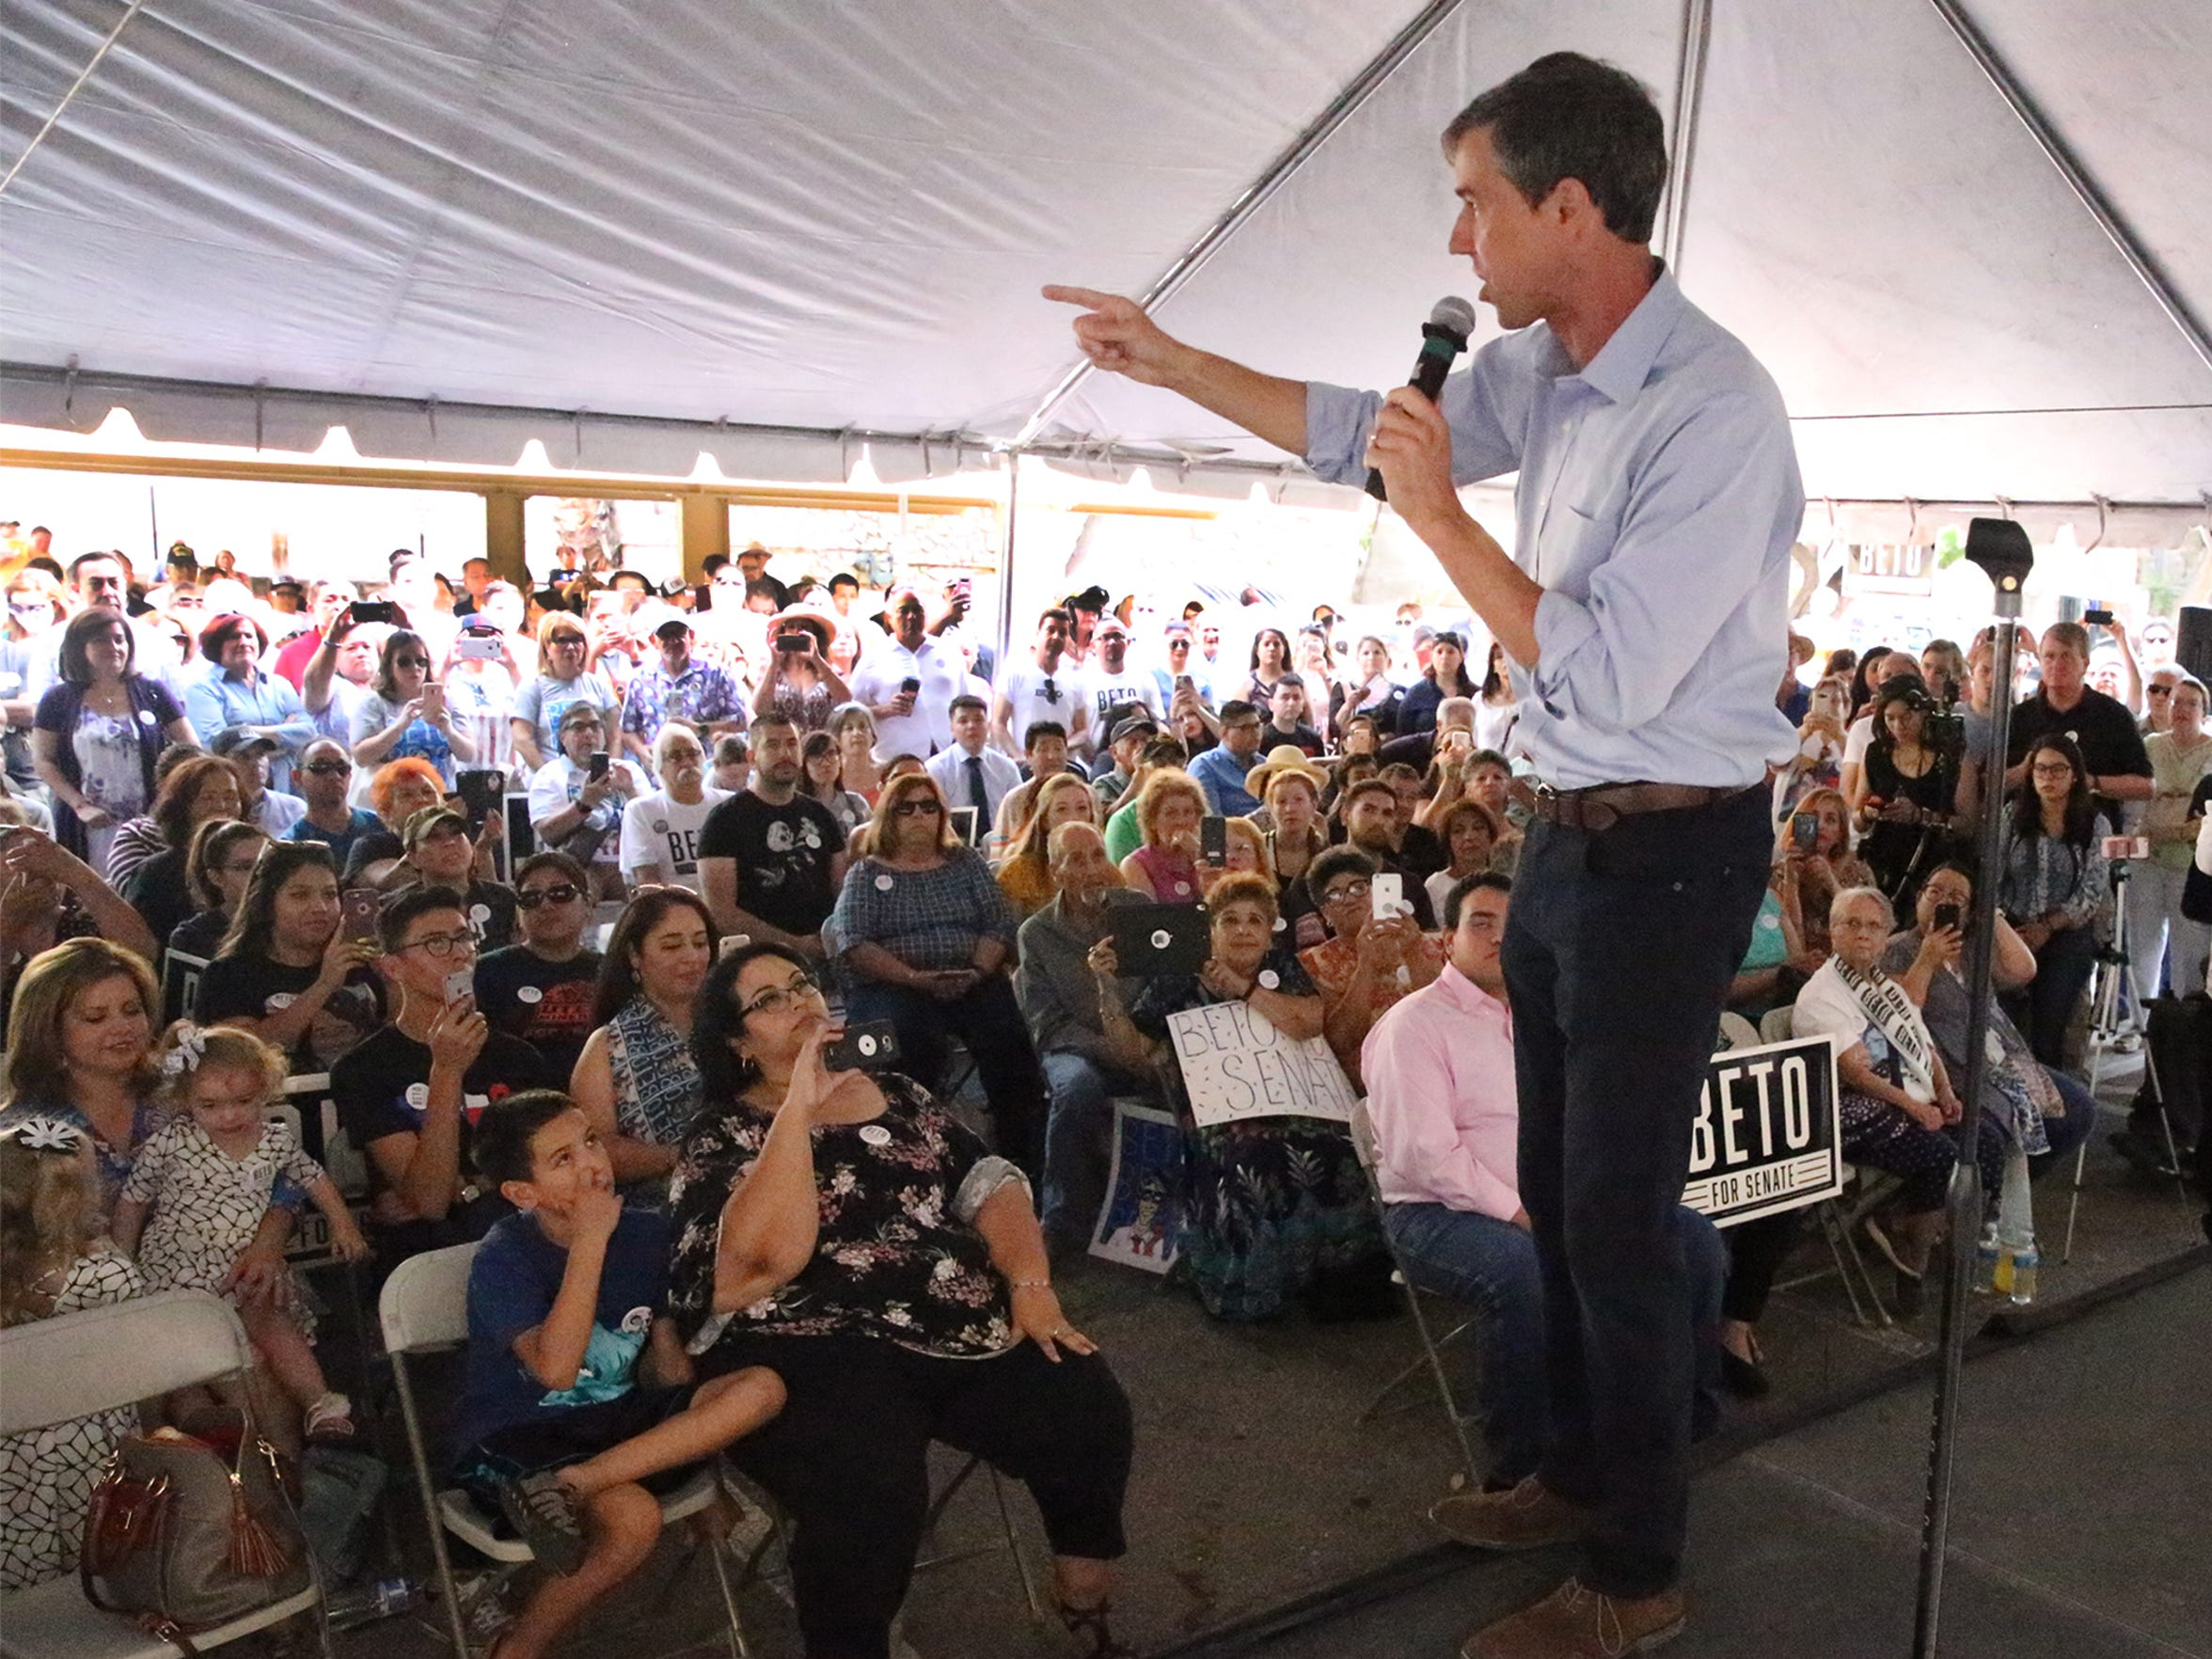 U.S Rep. Beto O'Rourke talks from a stage to a large gathering of local supporters during a 'Menudo & Mariachi' campaign stop in his hometown of El Paso in a parking lot at 415 E. Yandell Drive near downtown El Paso Sunday. About 1,000 people showed up to have menudo, listen to a mariachi group and hear O'Rourke deliver a rousing talk in which he announced the start of a 34-day road trip to visit 50 cities and more than 100 town hall events.  He said El Paso should be the example for the rest of the country. 'This is a time to celebrate the fact that people chose to come here to this community to start their lives in the United States of America in El Paso Texas USA.' 800 people sent in reservations via social media in advance, campaign workers said. O'Rourke said his campaign has raised $10.4 million from individual contributions without taking any money from political action committees or special interest groups.